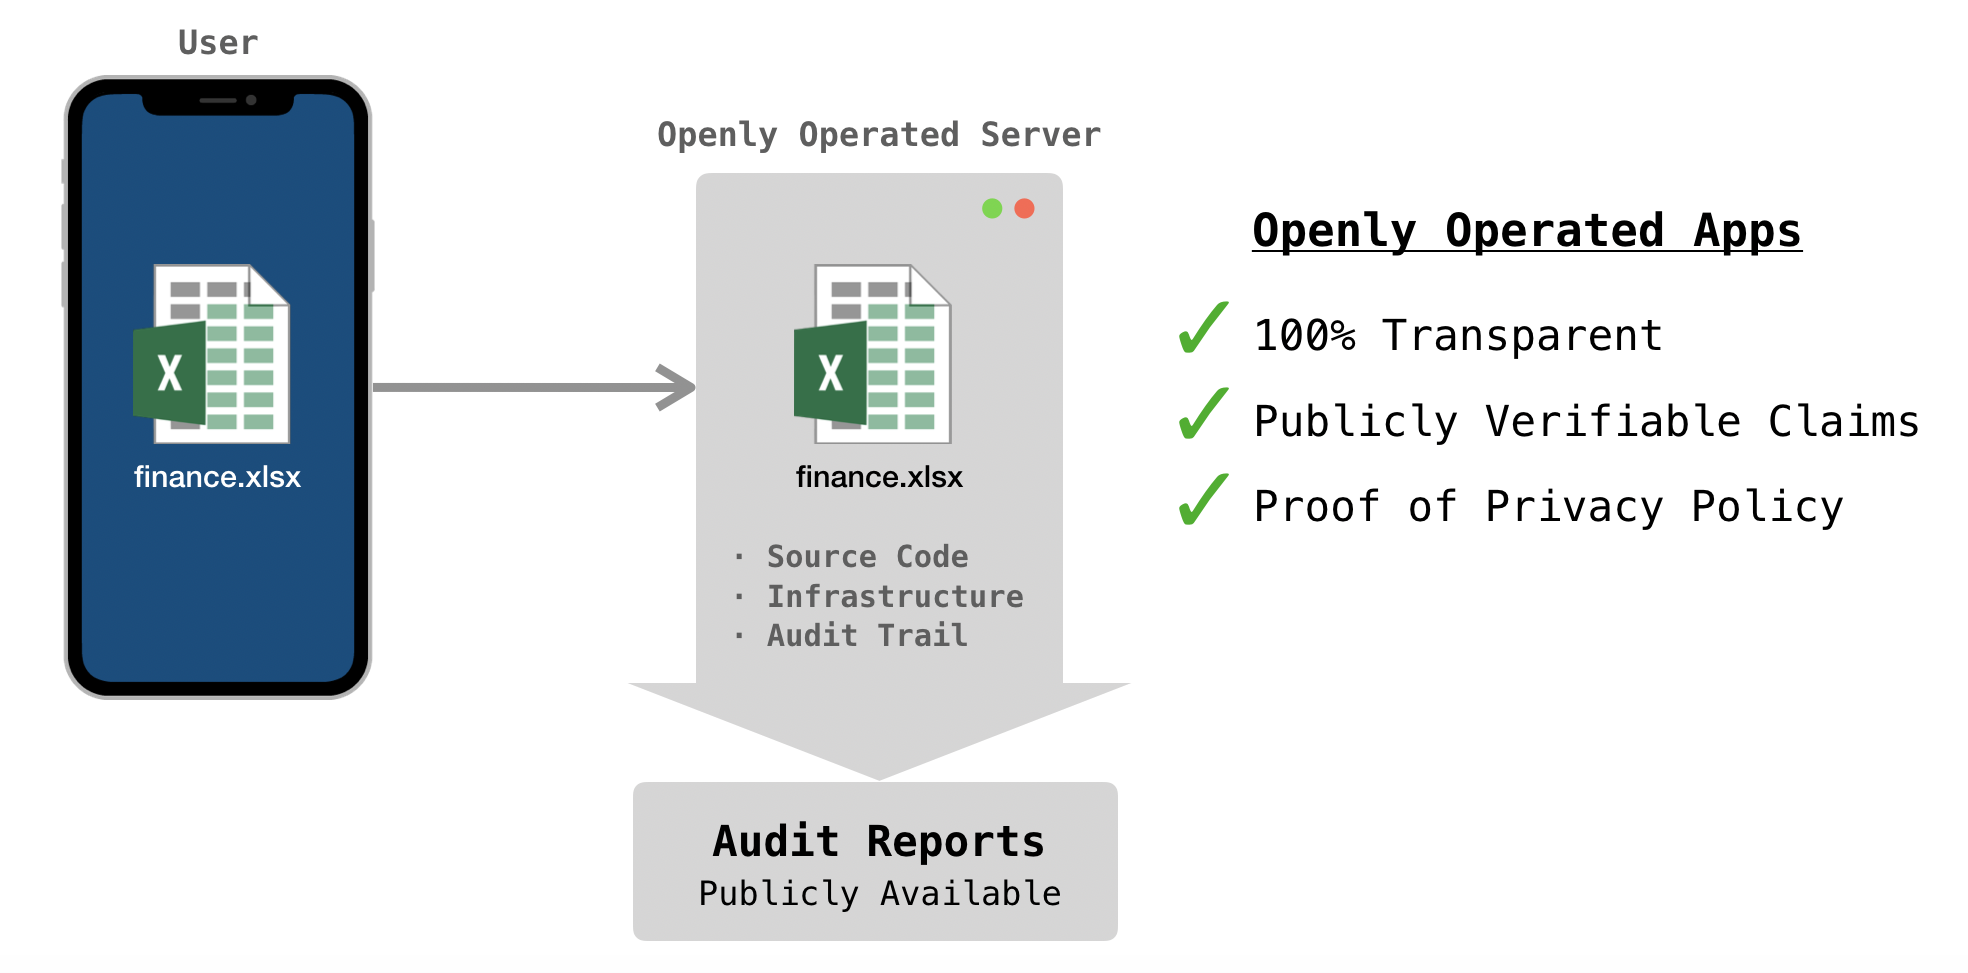 Diagram of phone transferring a secret document to an openly operated server.